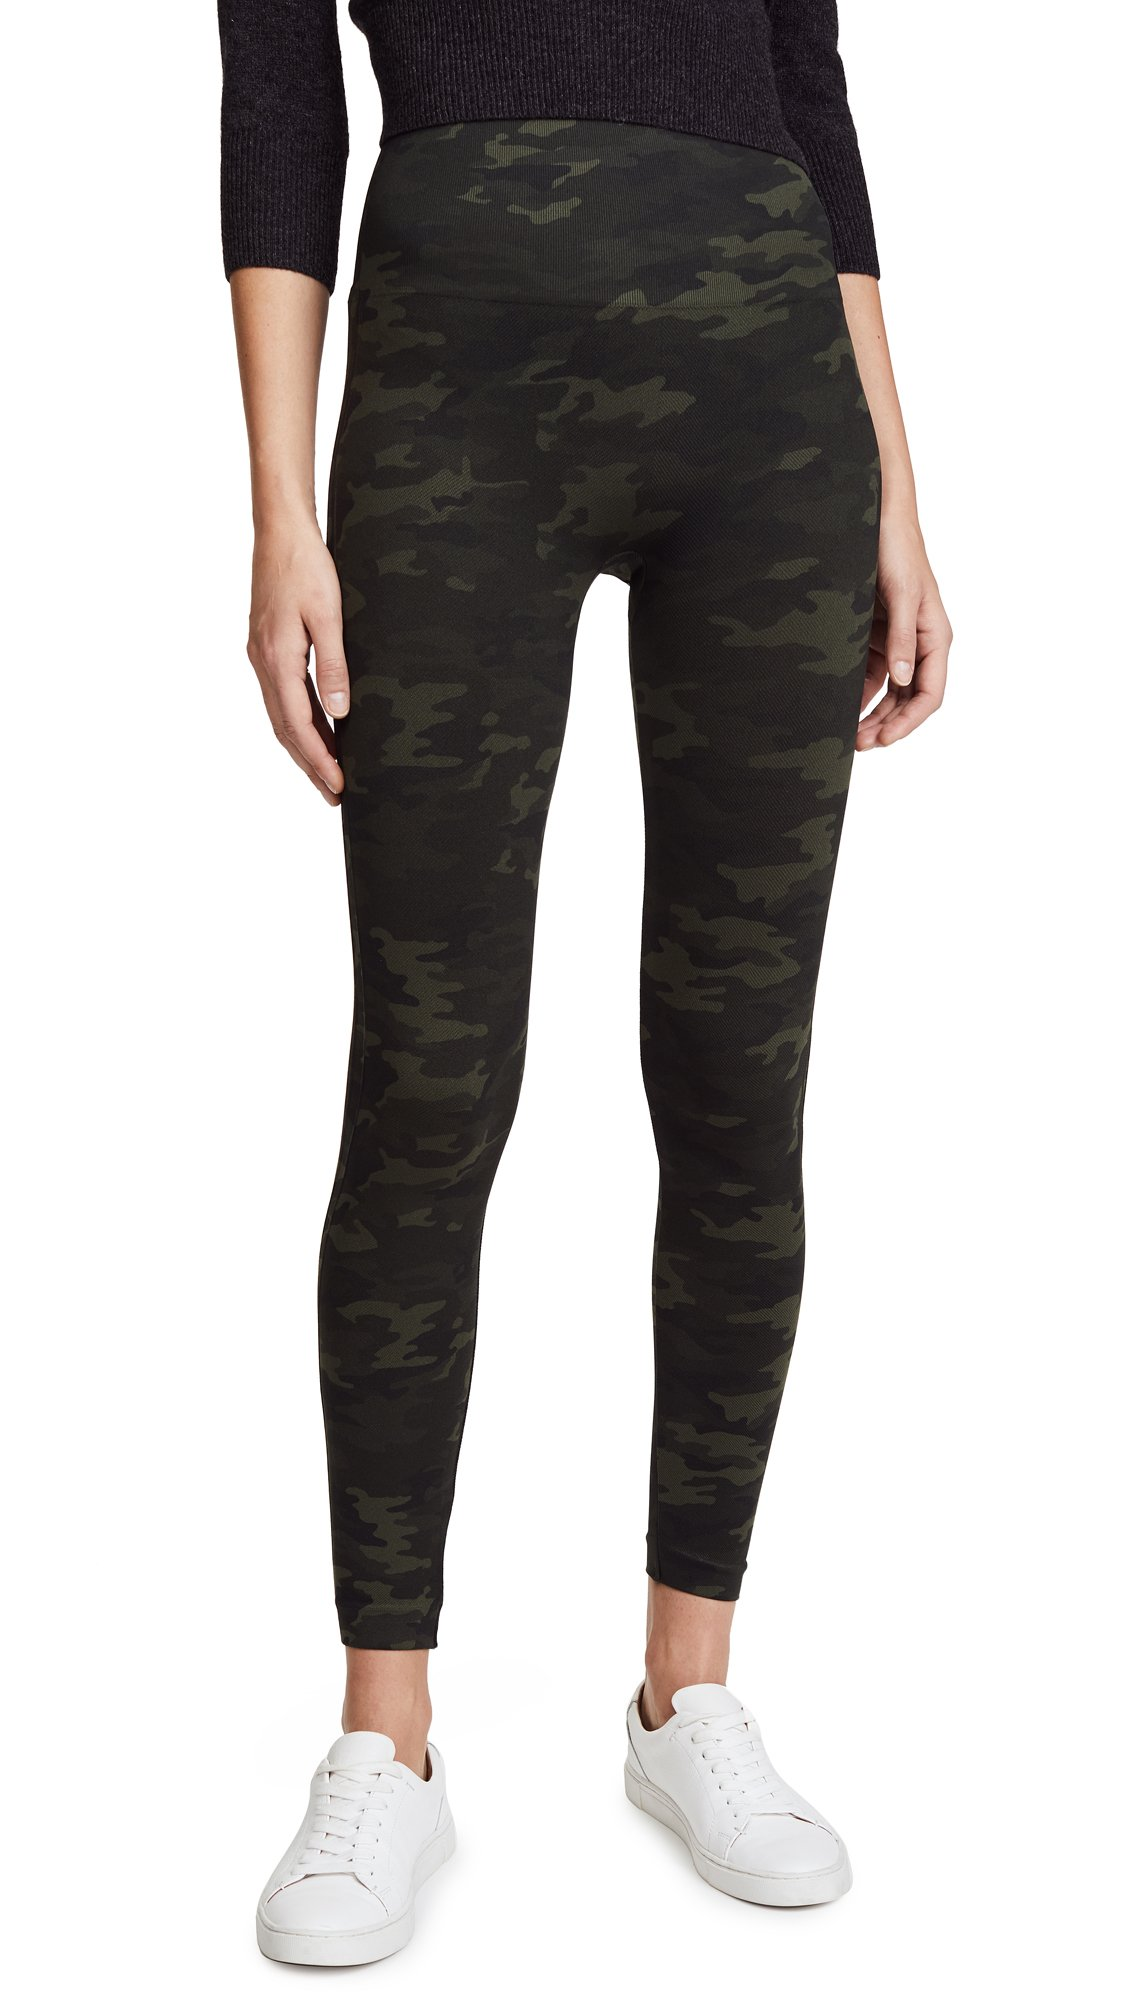 SPANX Women's Seamless Camo Leggings, Green Camo, Medium